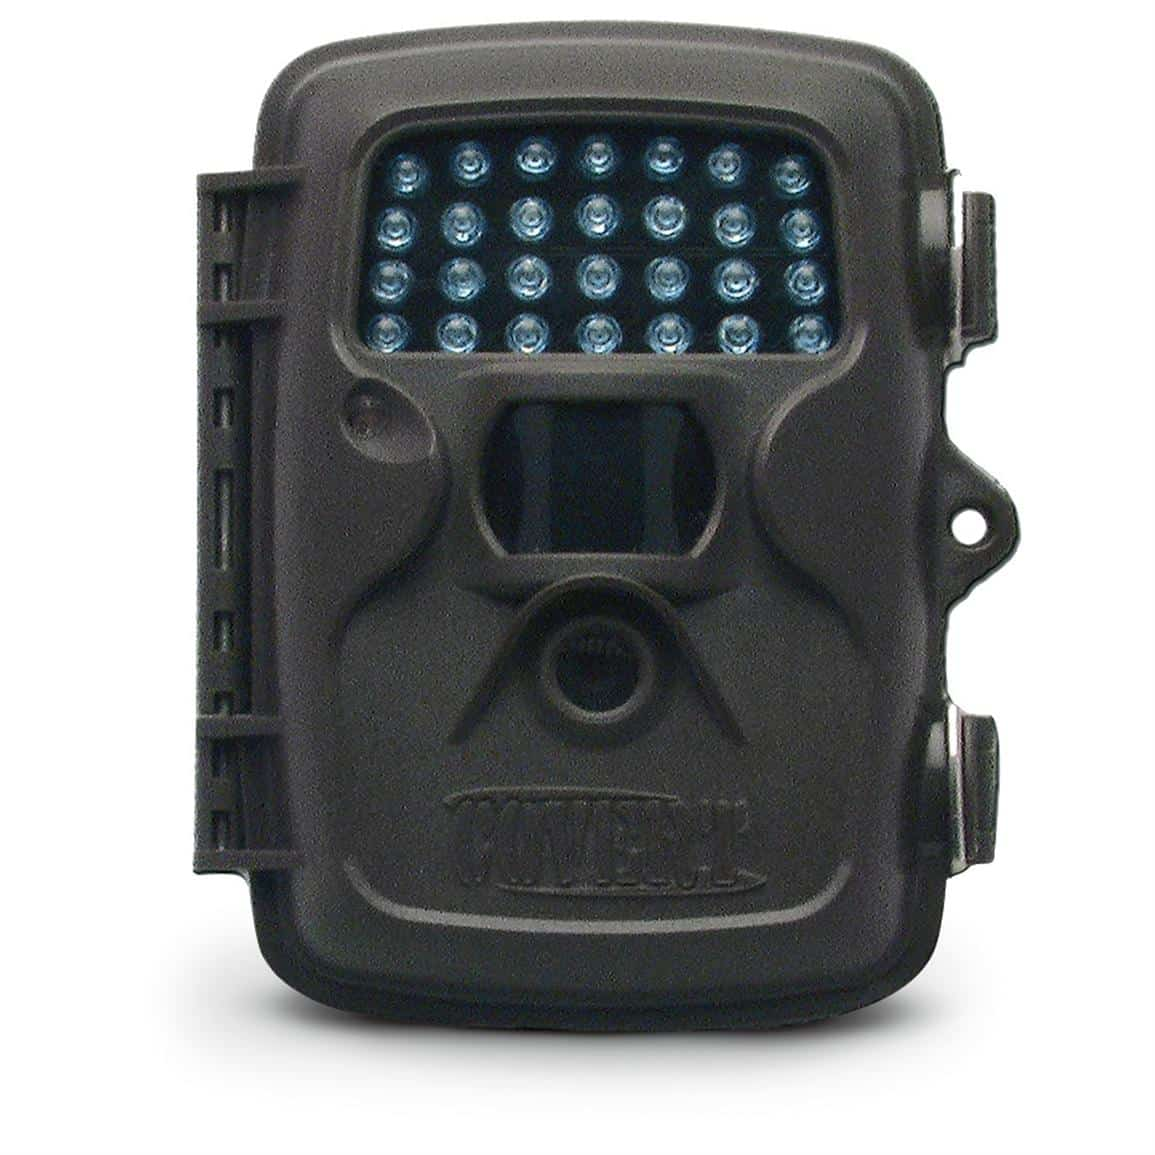 Game Cameras - about camera